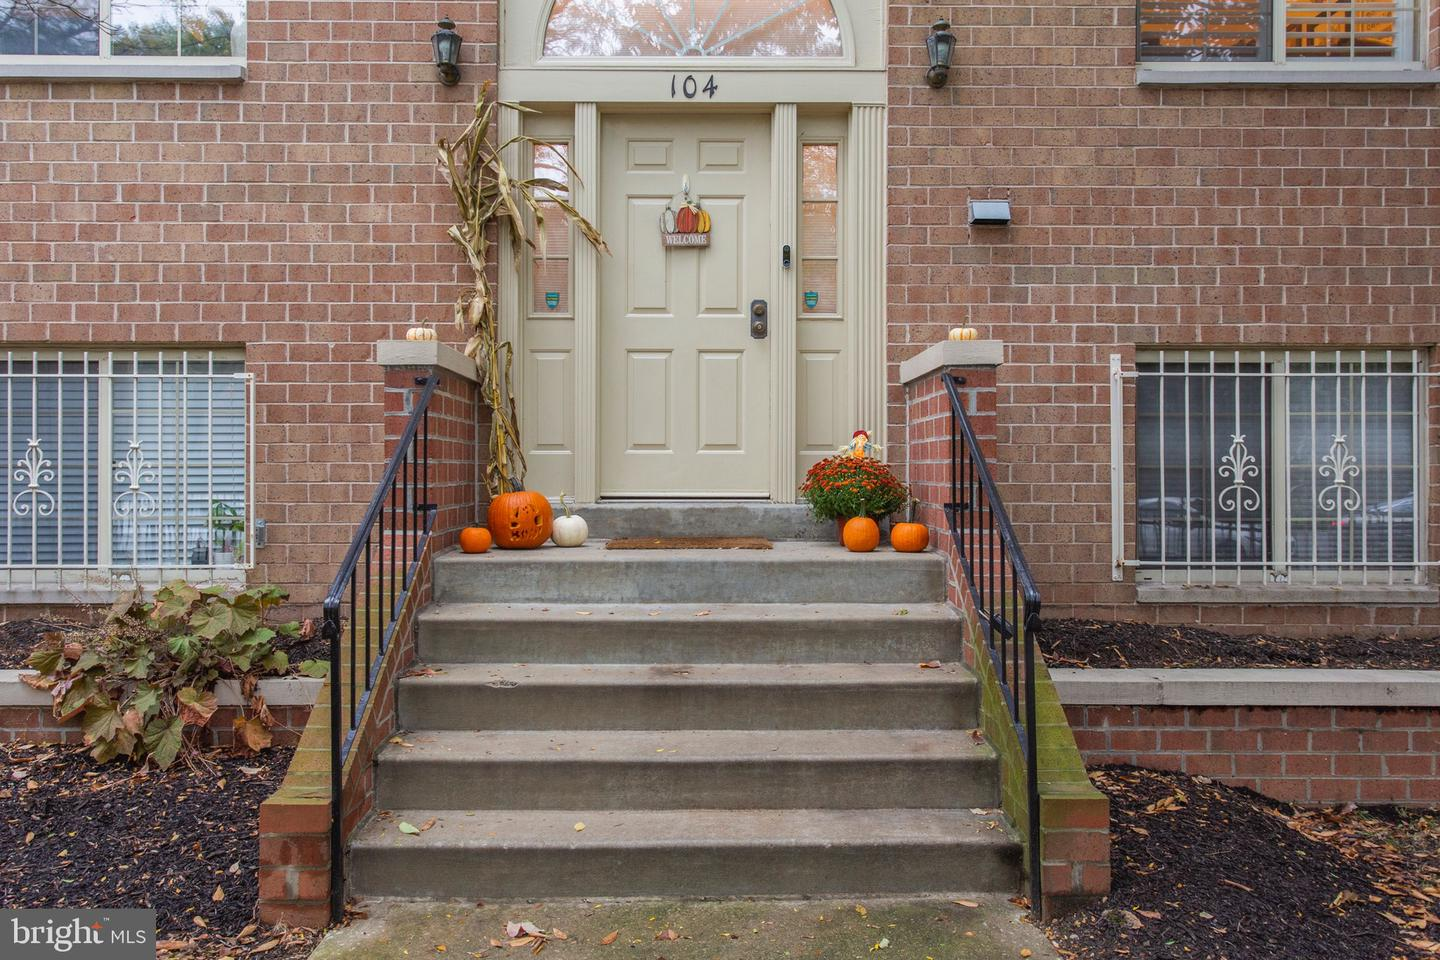 2751 Pennsylvania Avenue UNIT B104 Philadelphia , PA 19130